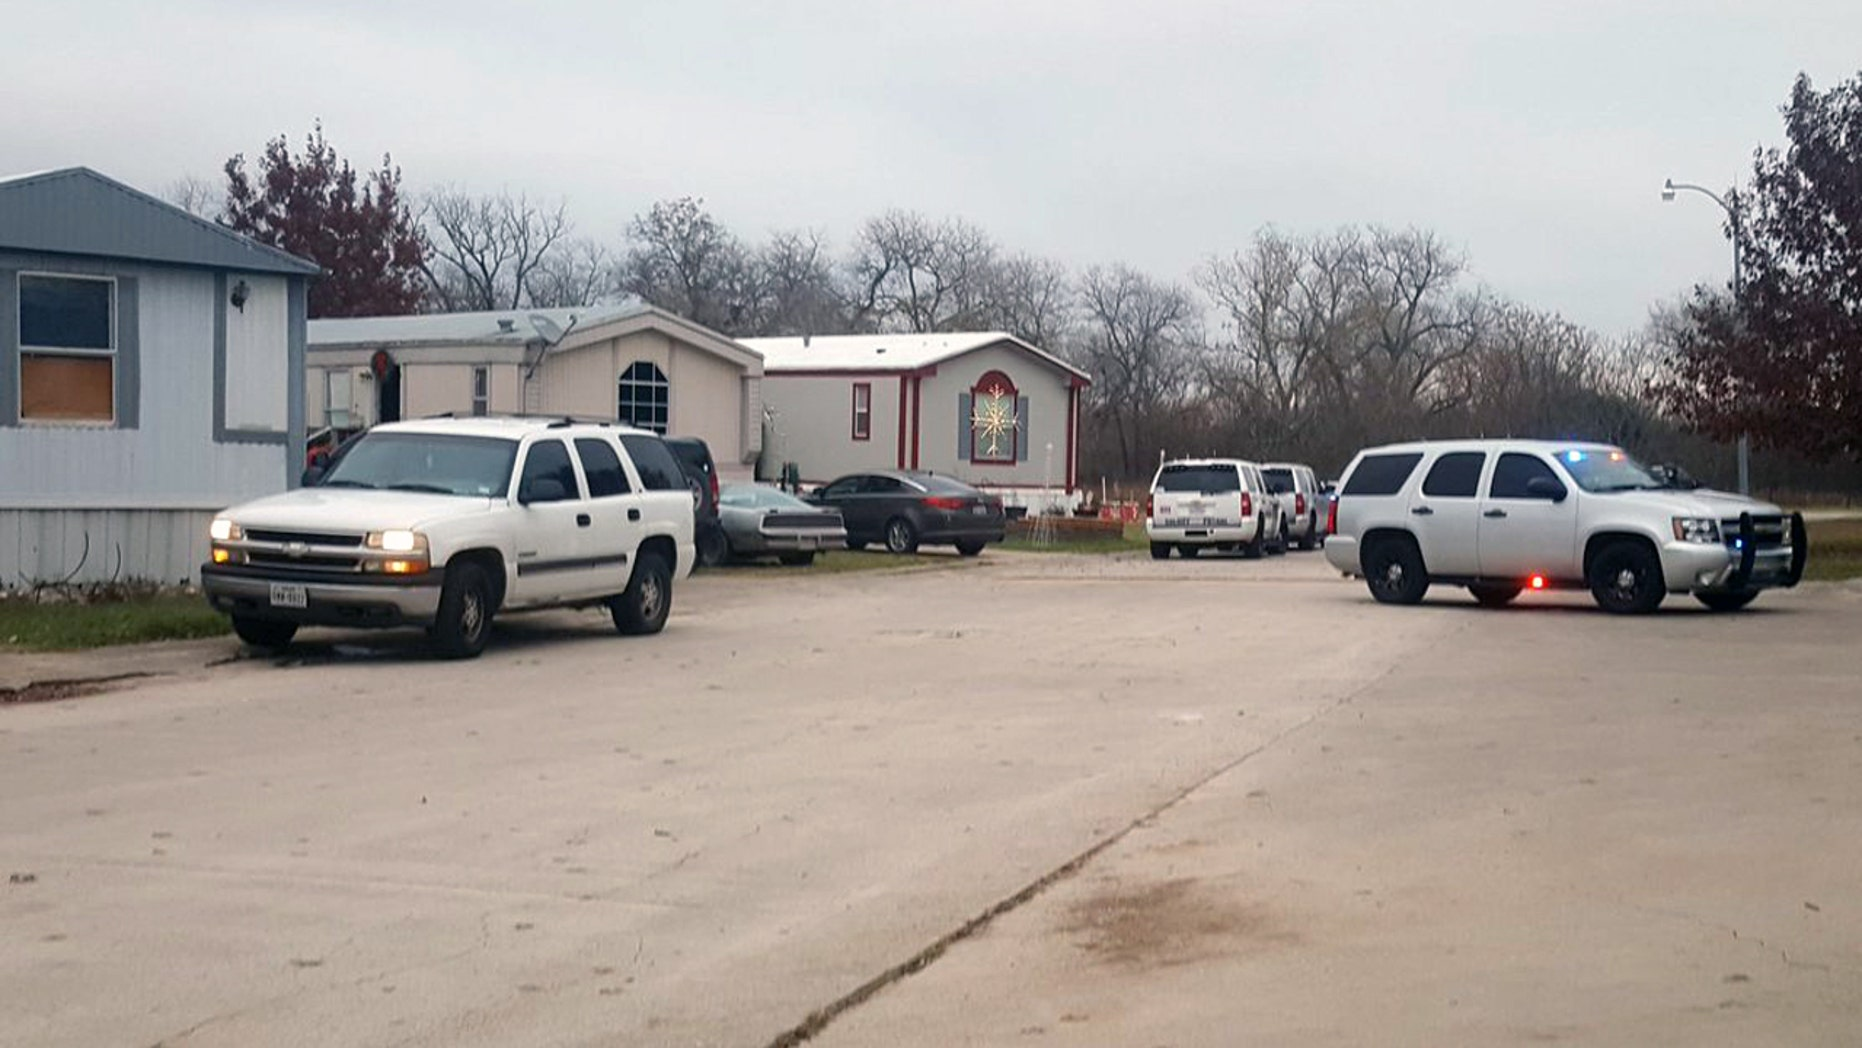 Authorities respond to a mobile home park in Schertz, Texas where a female suspect and a 7-year-old boy were killed in a gun battle.